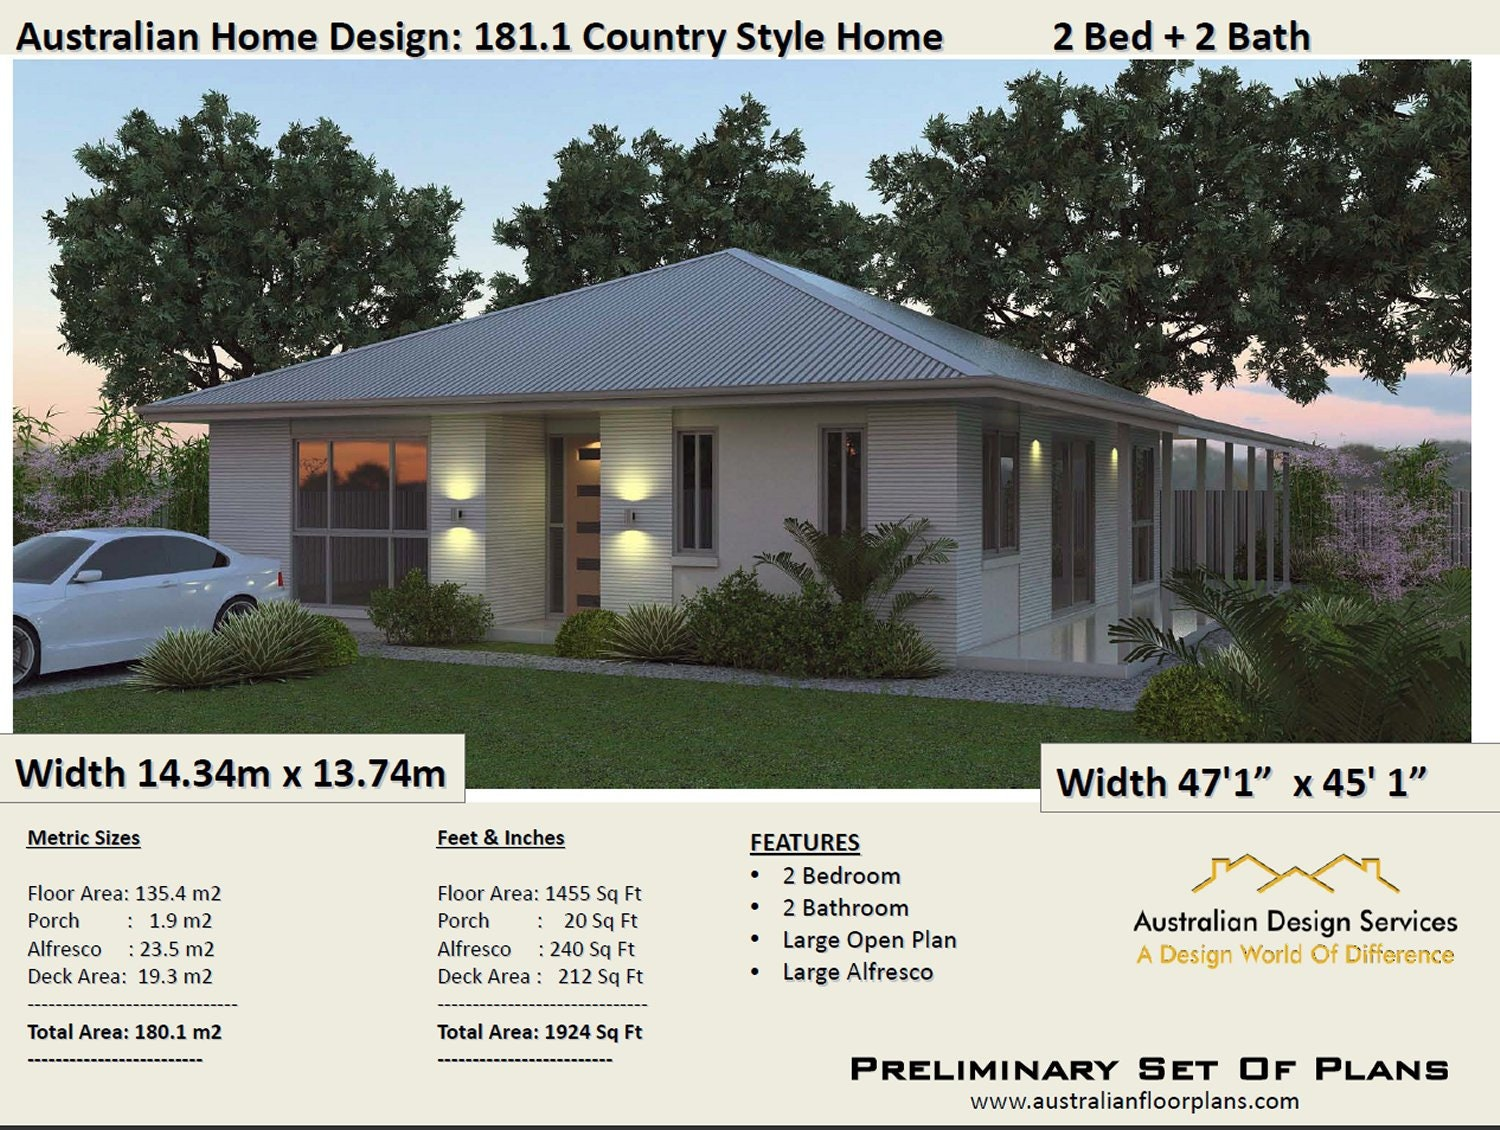 2 Bedroom House Plans Australia 180m2 1924 Sq Ft Homestead 2